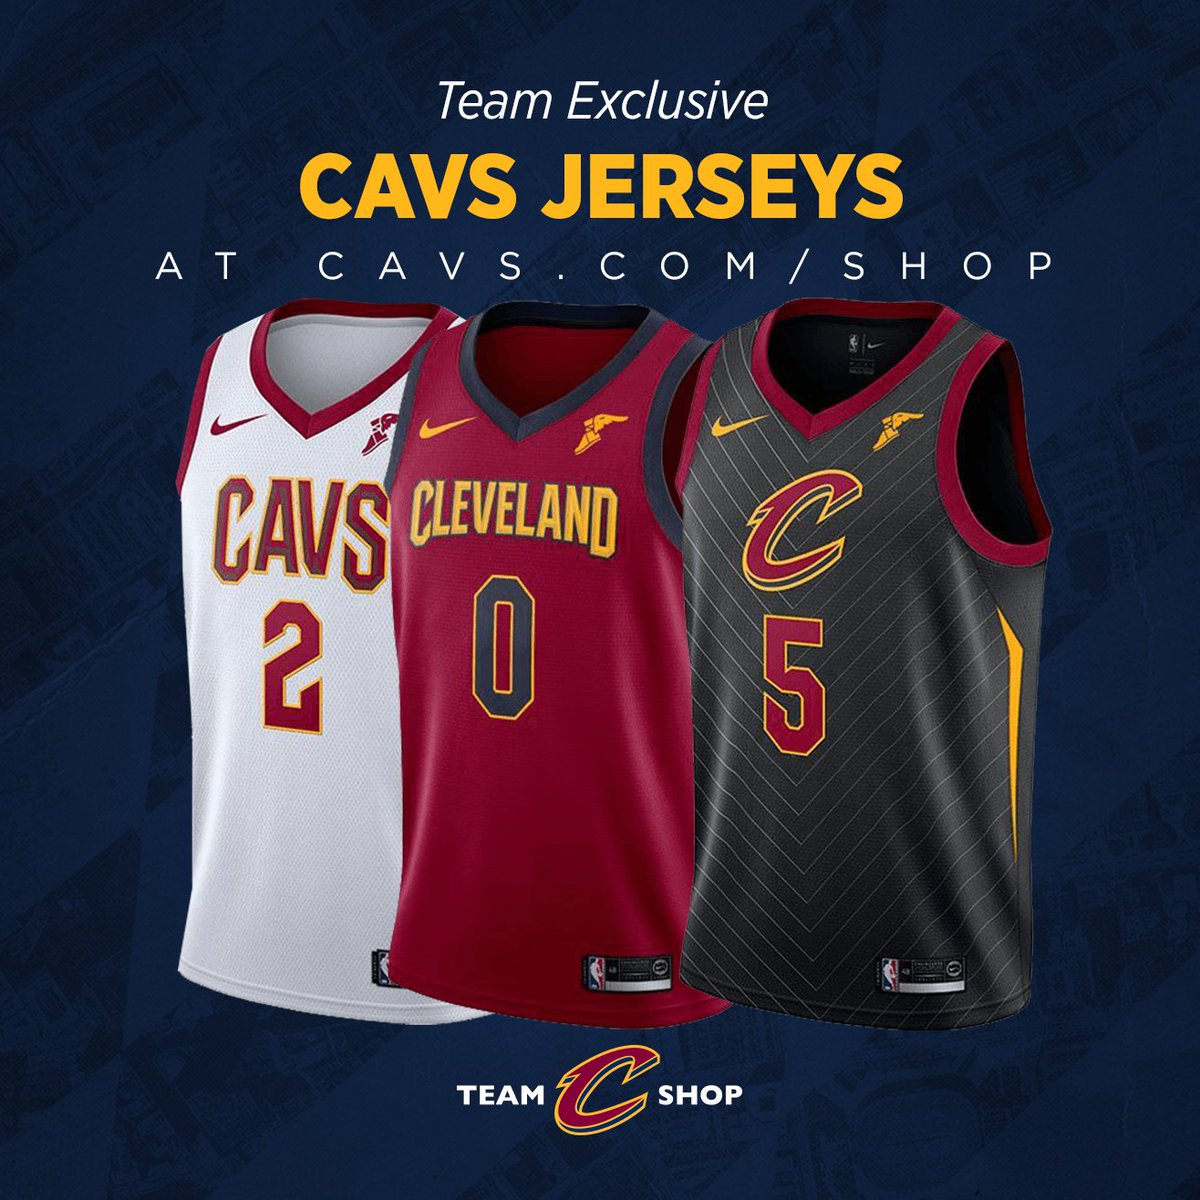 74920030d031 Shop anytime at http   Cavs.com shop ! Don t see the jersey you re looking  for  Sign up for Jersey Restock notifications at ...